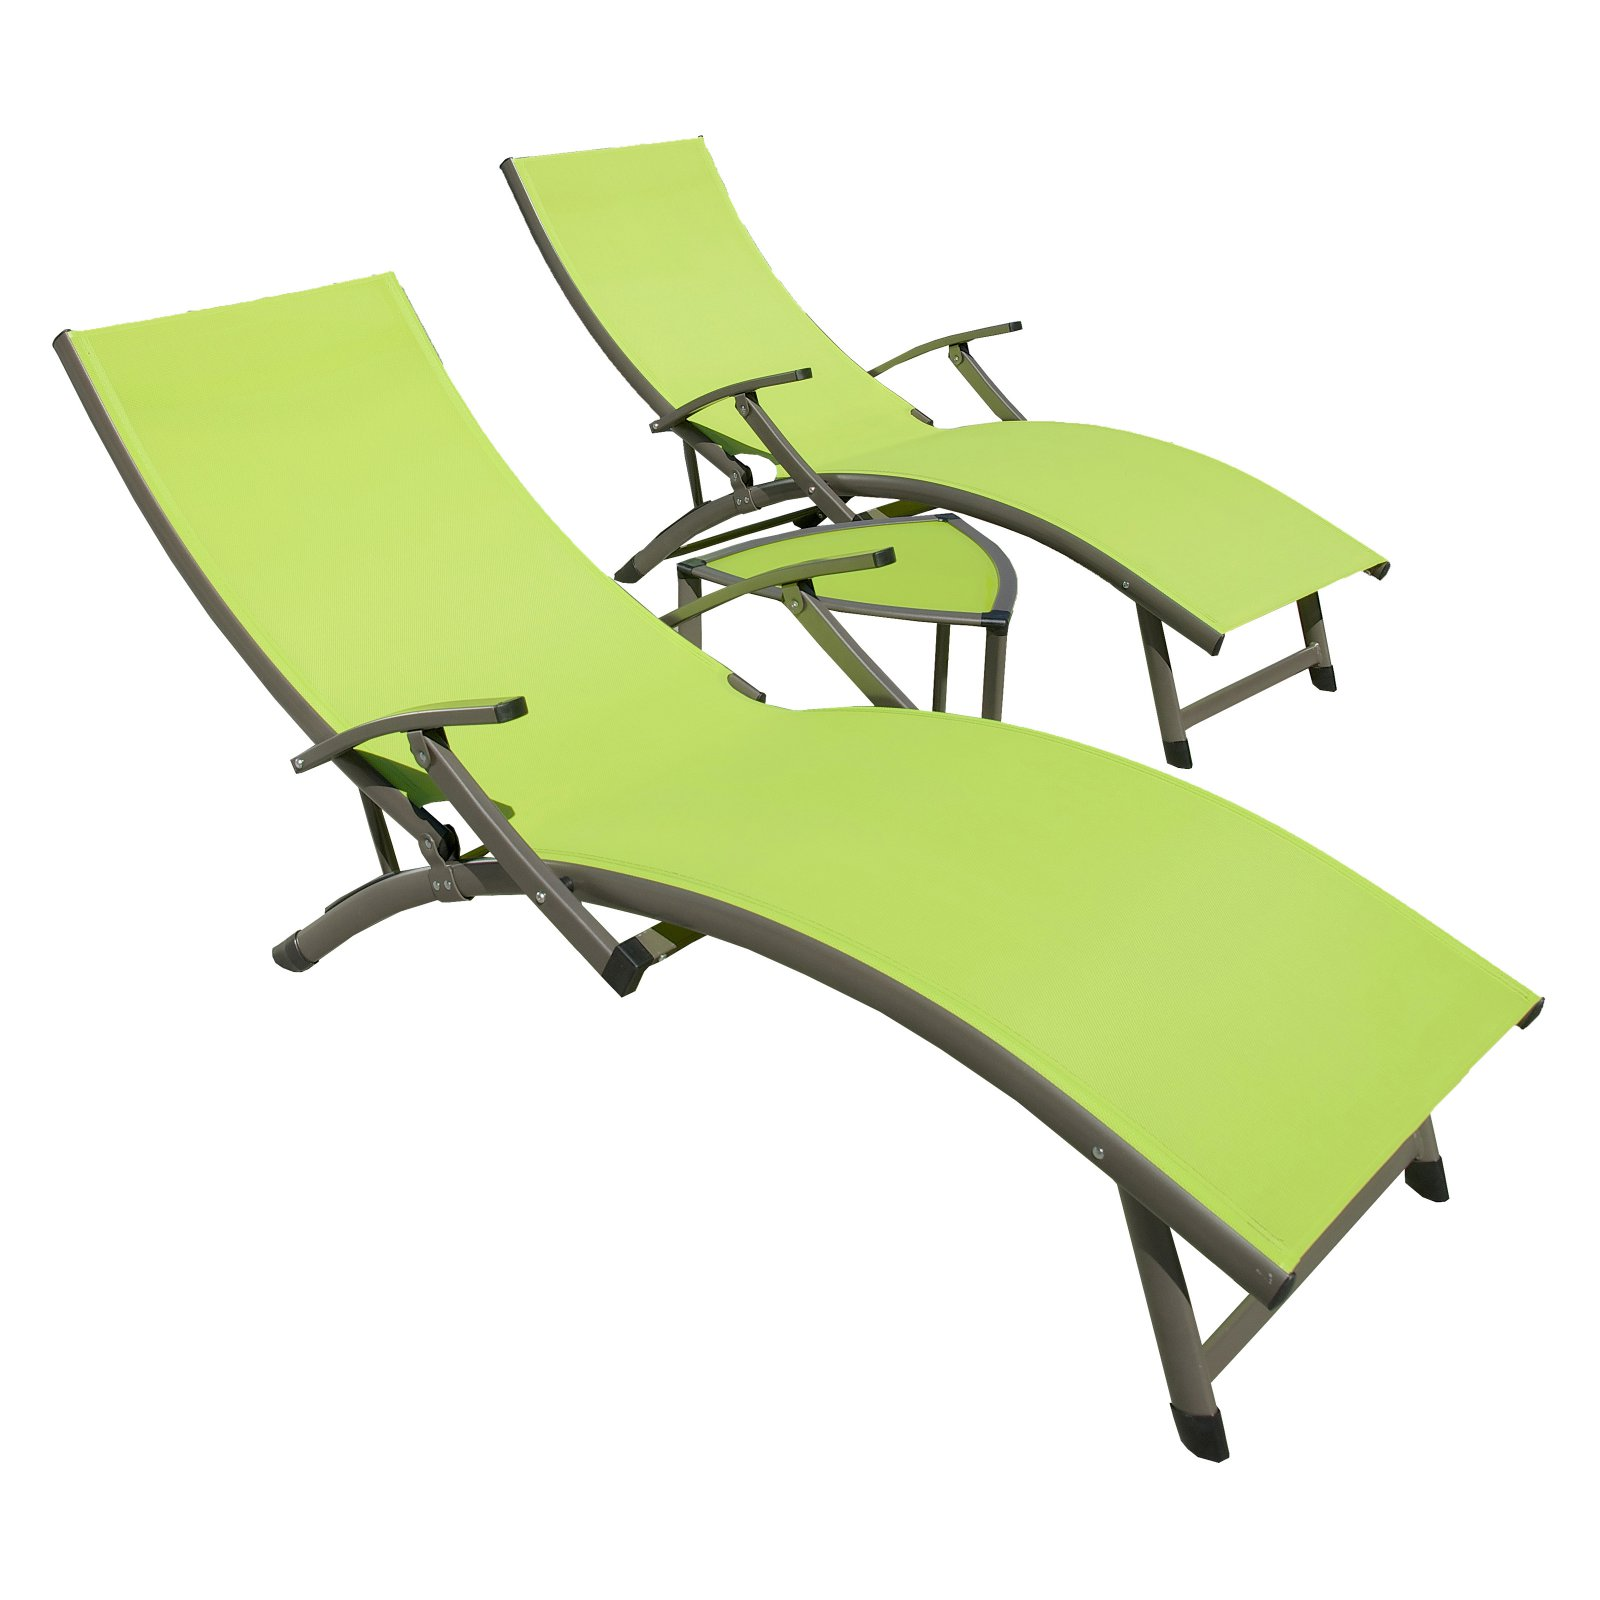 RST Brands Sol Aluminum 3 Piece Sling Patio Chaise Lounge Set